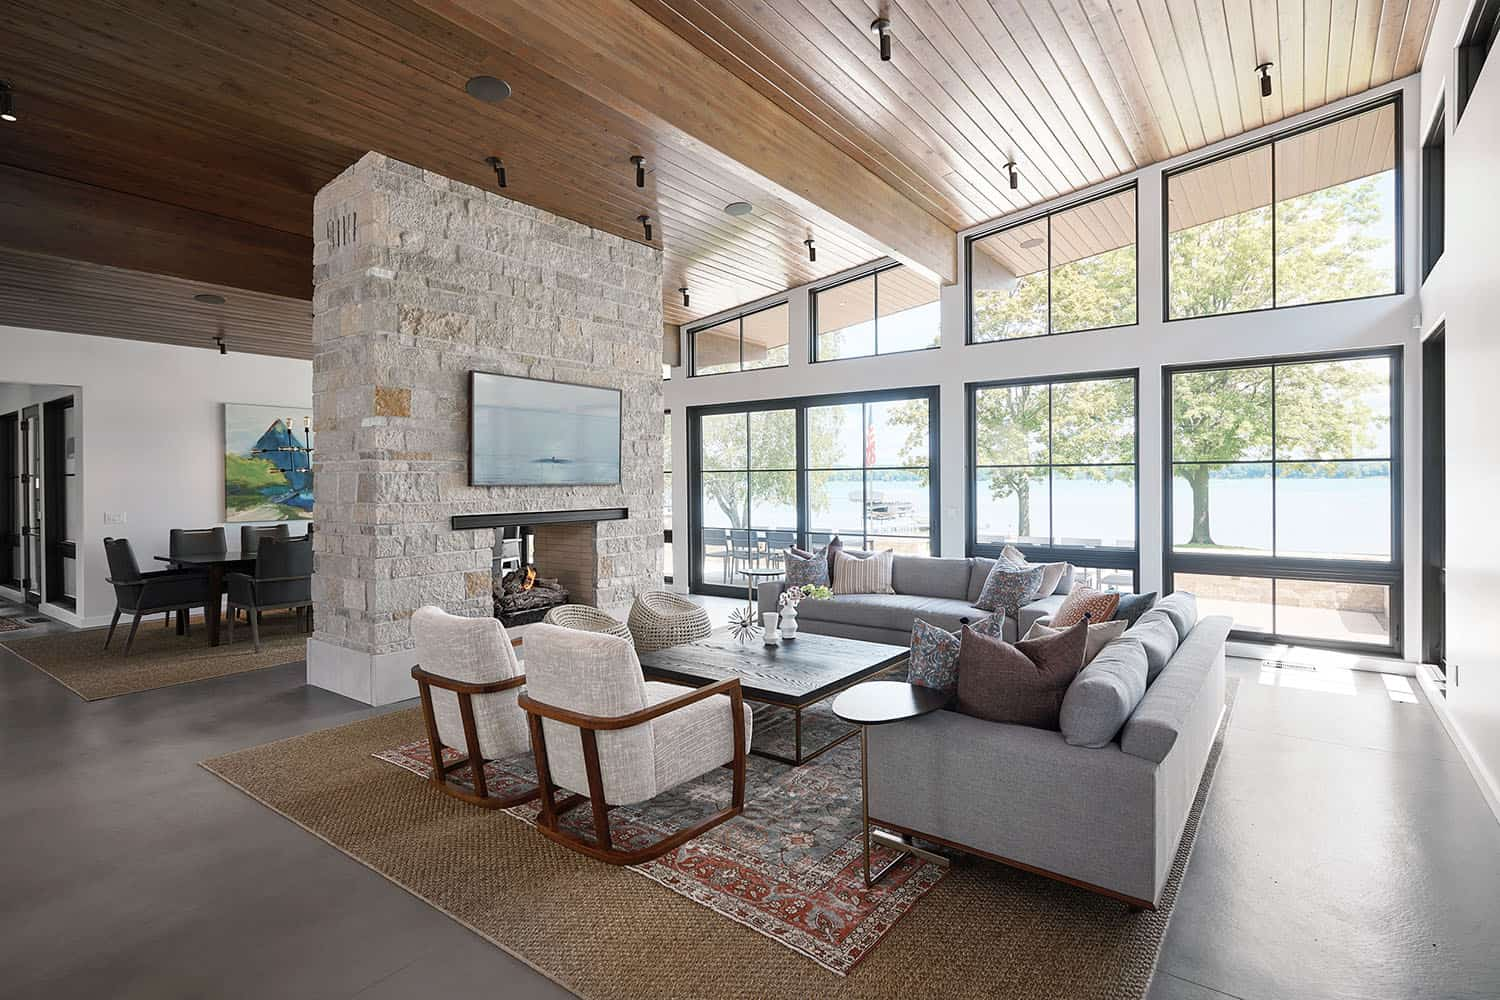 Spectacular lake house boasts midcentury design elements in Michigan